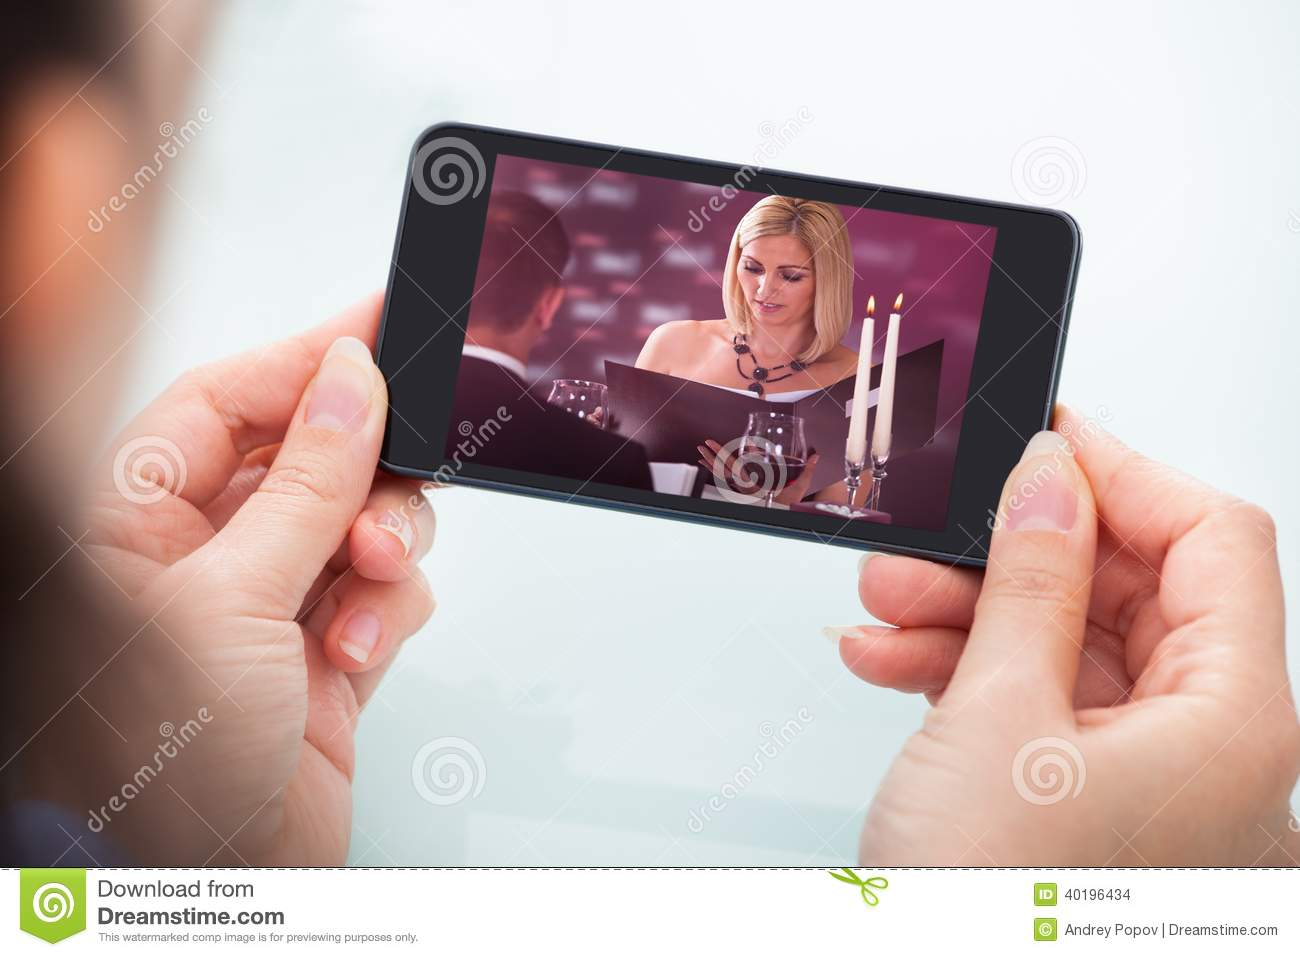 Watch porn from cell phone